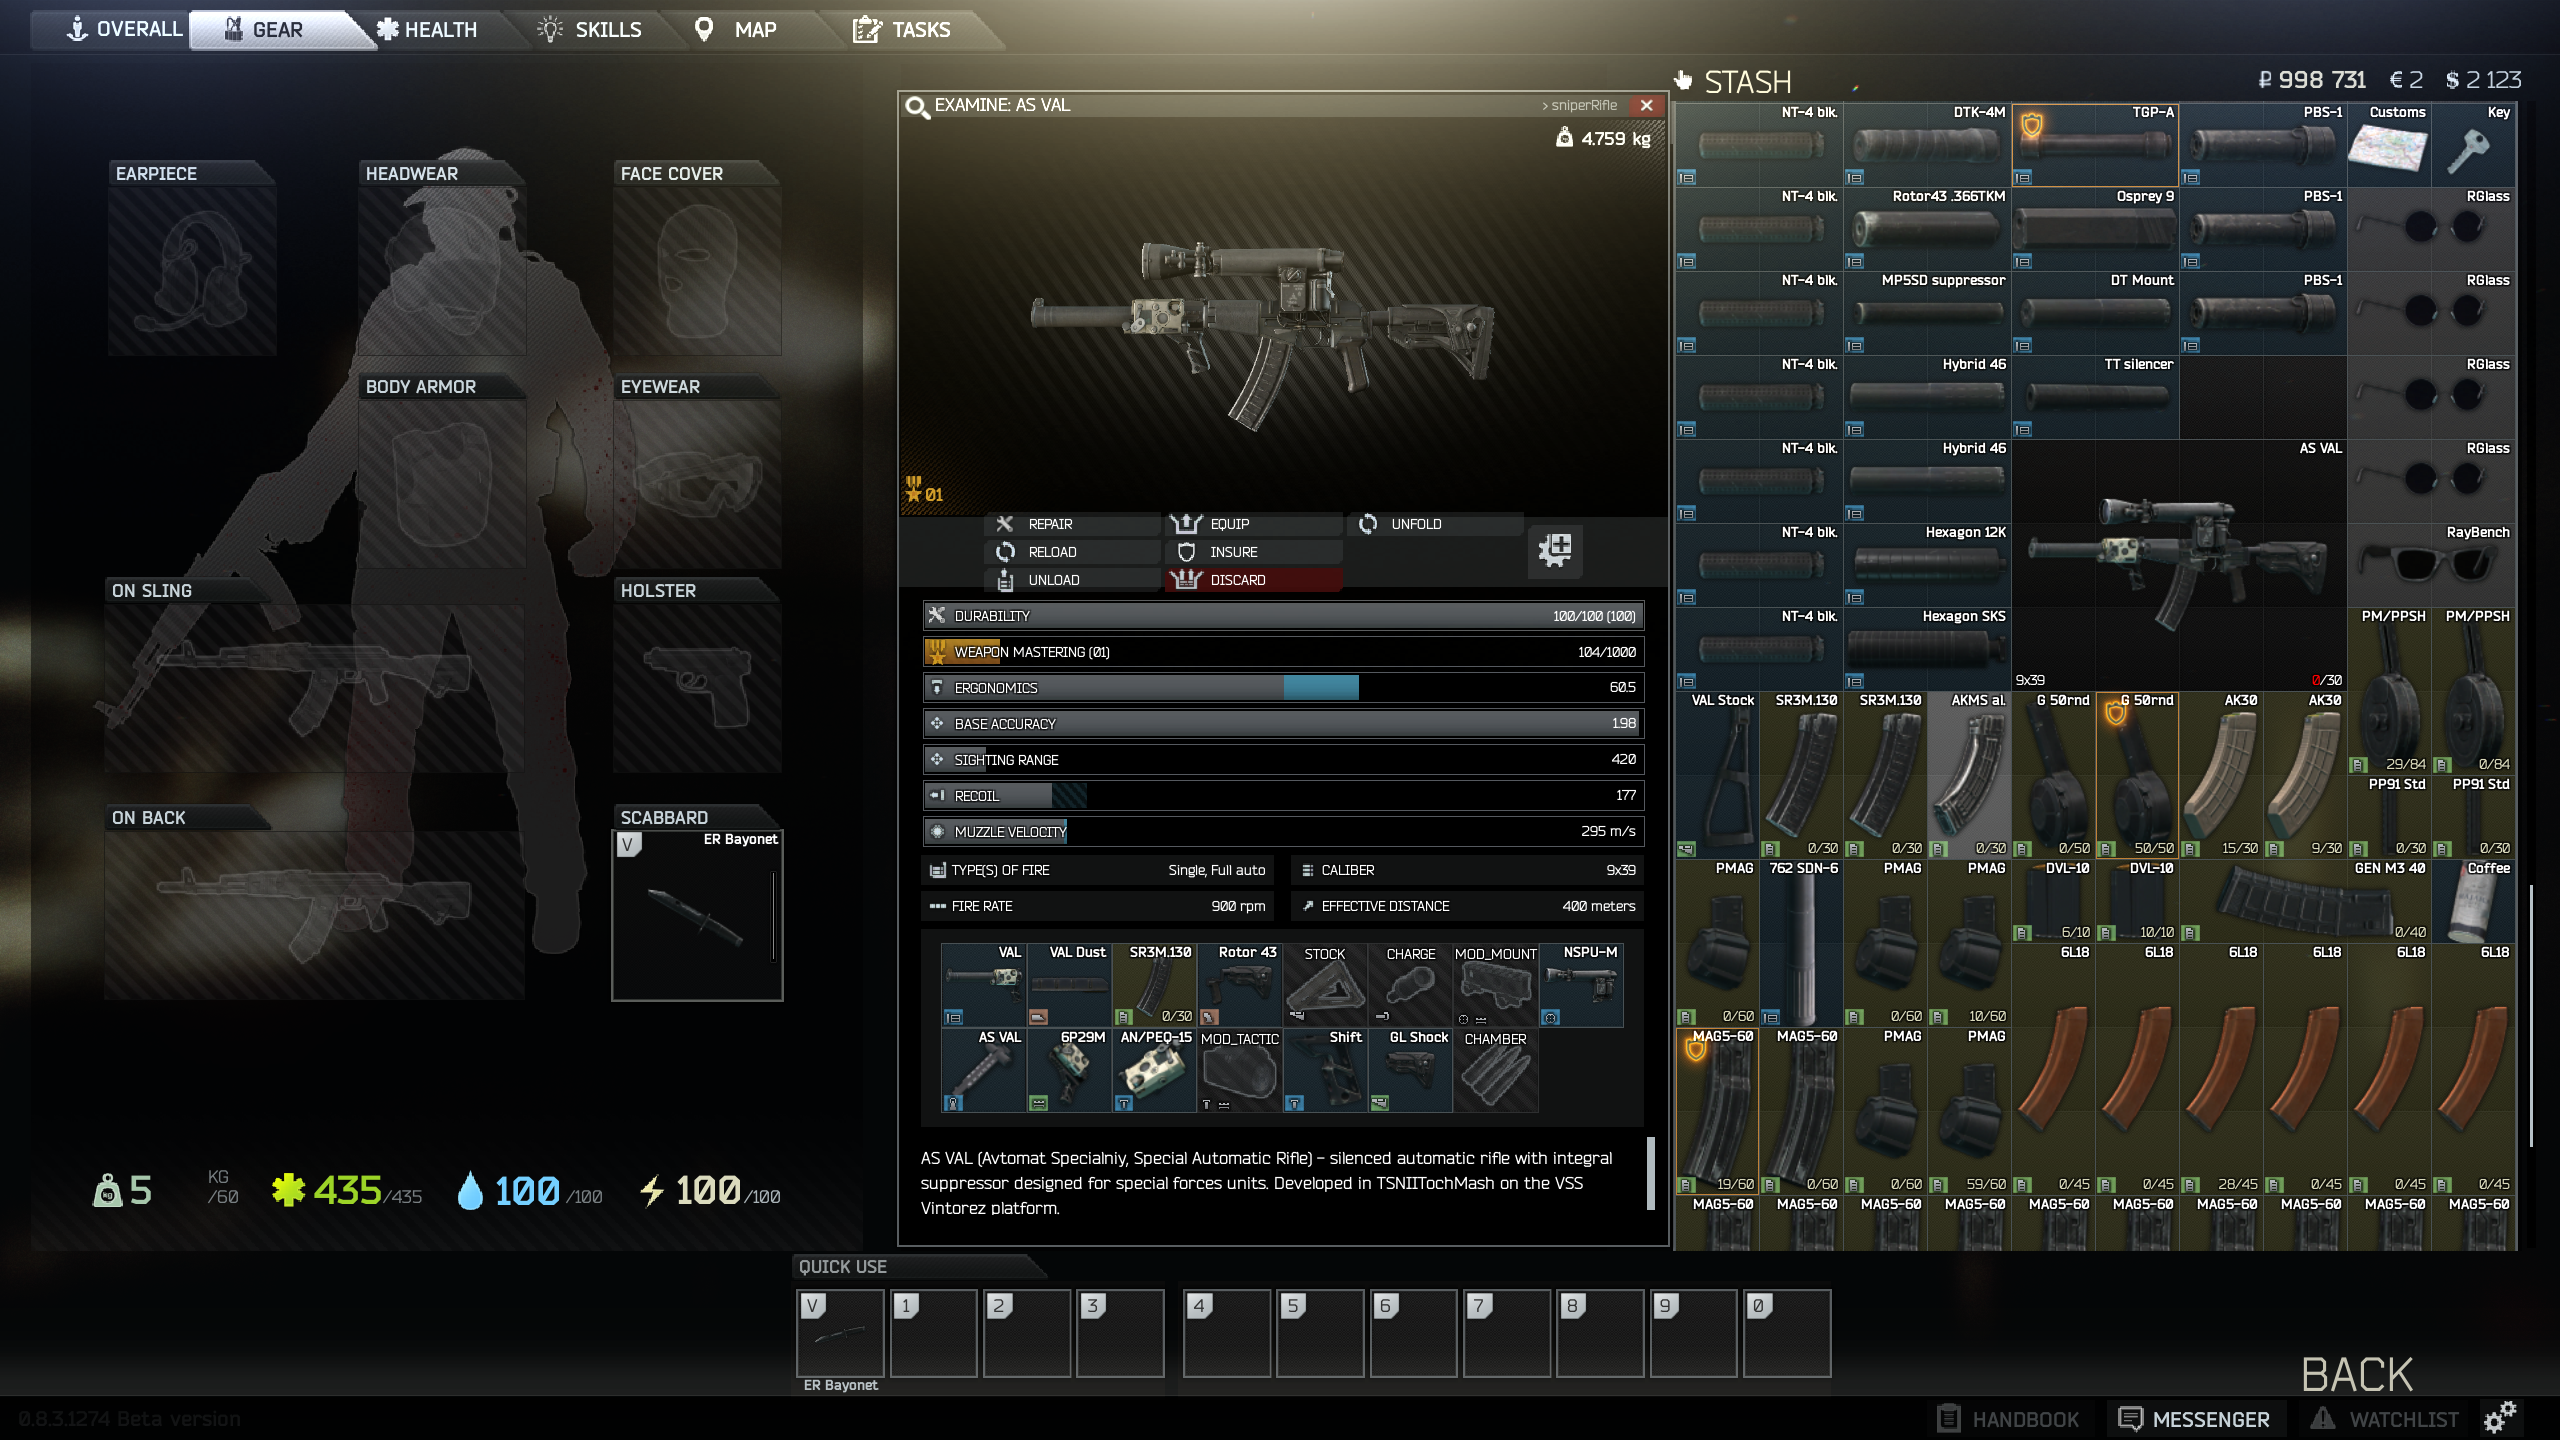 Gunsmithing Part 11 Bug General Game Forum Escape From Tarkov Forum See more ideas about guns, gunsmithing, firearms. gunsmithing part 11 bug general game